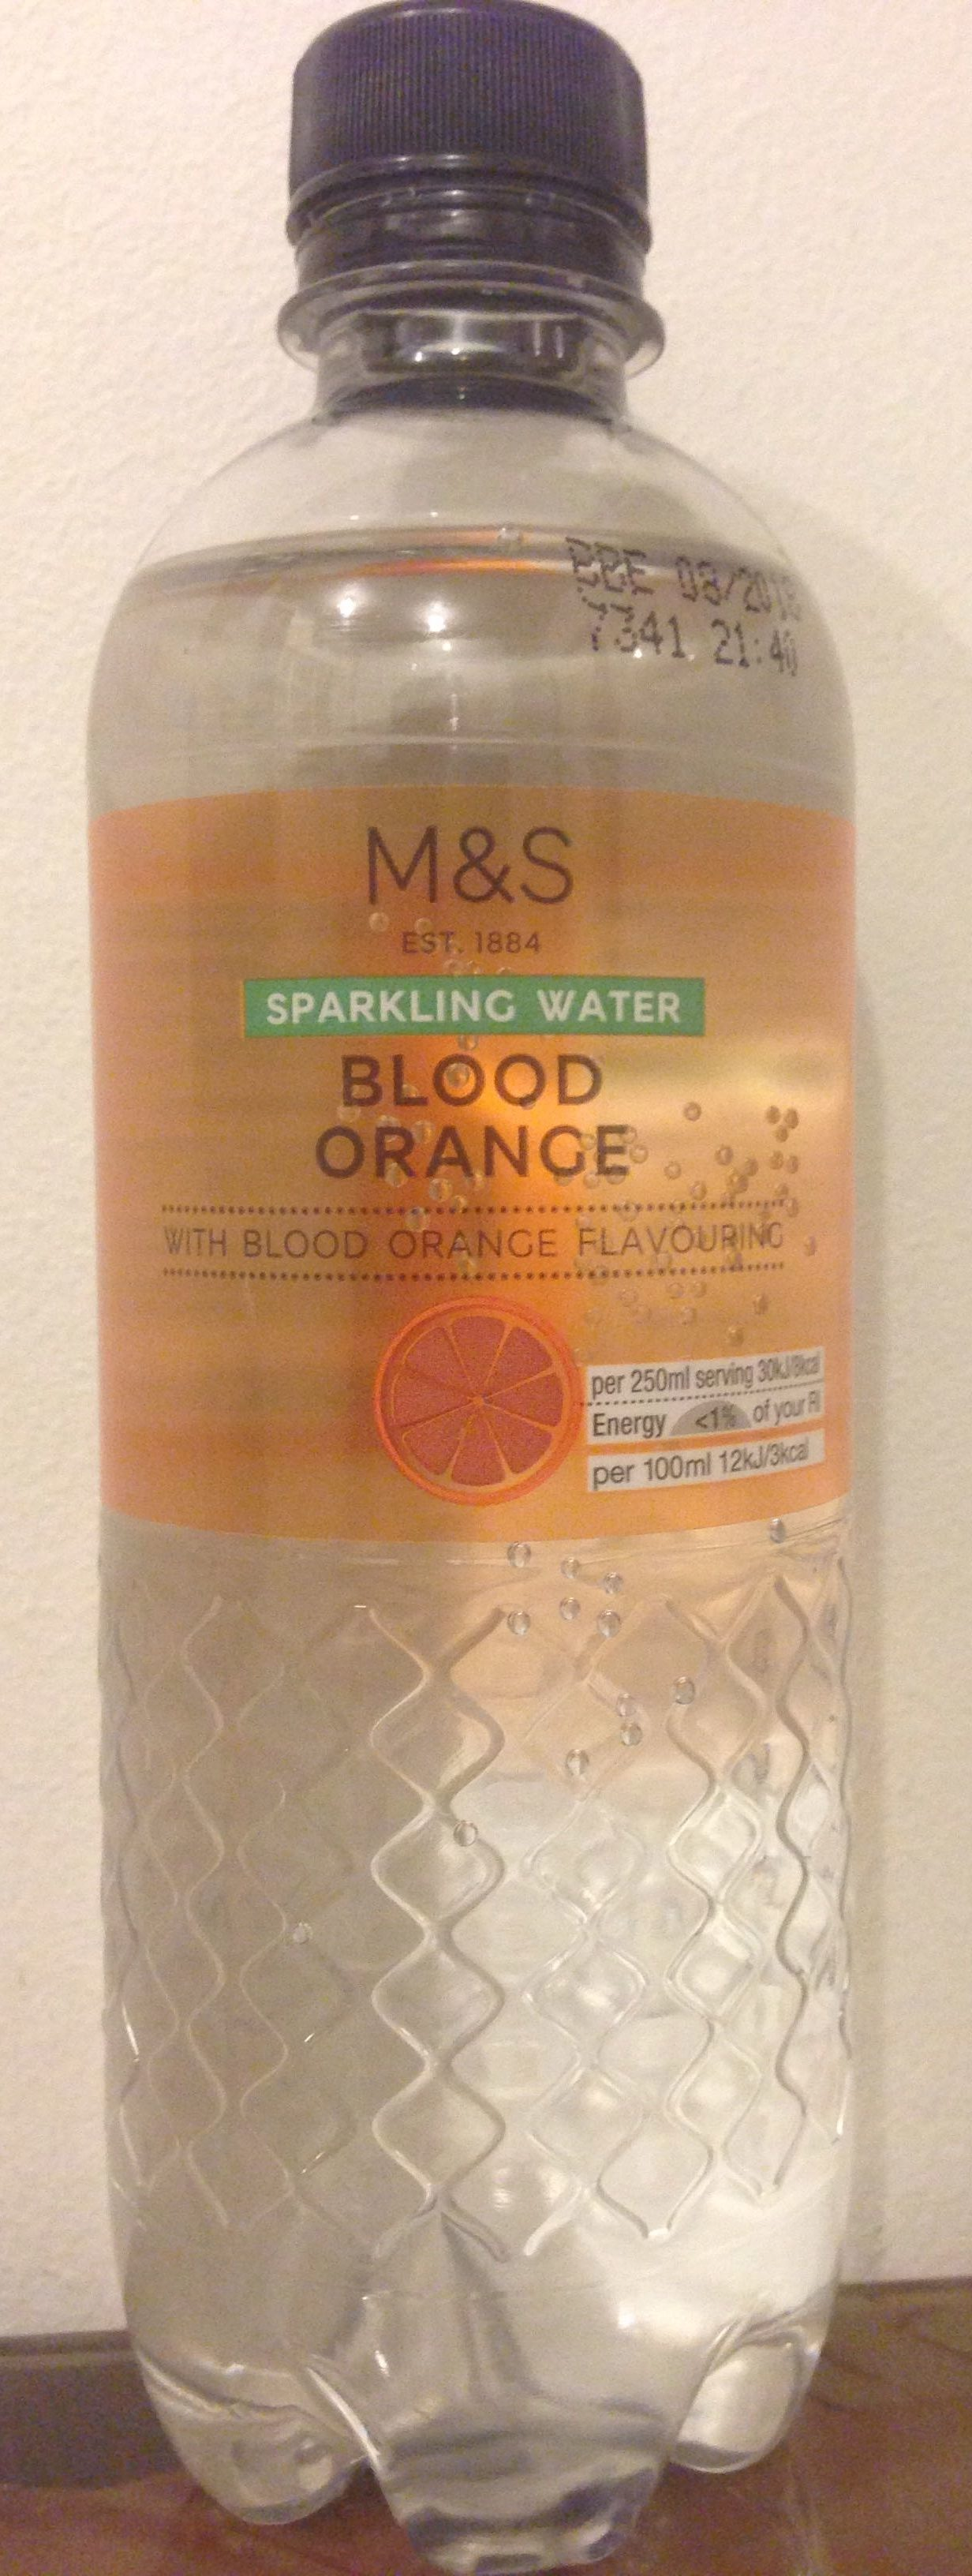 Sparkling Water - blood orange - Product